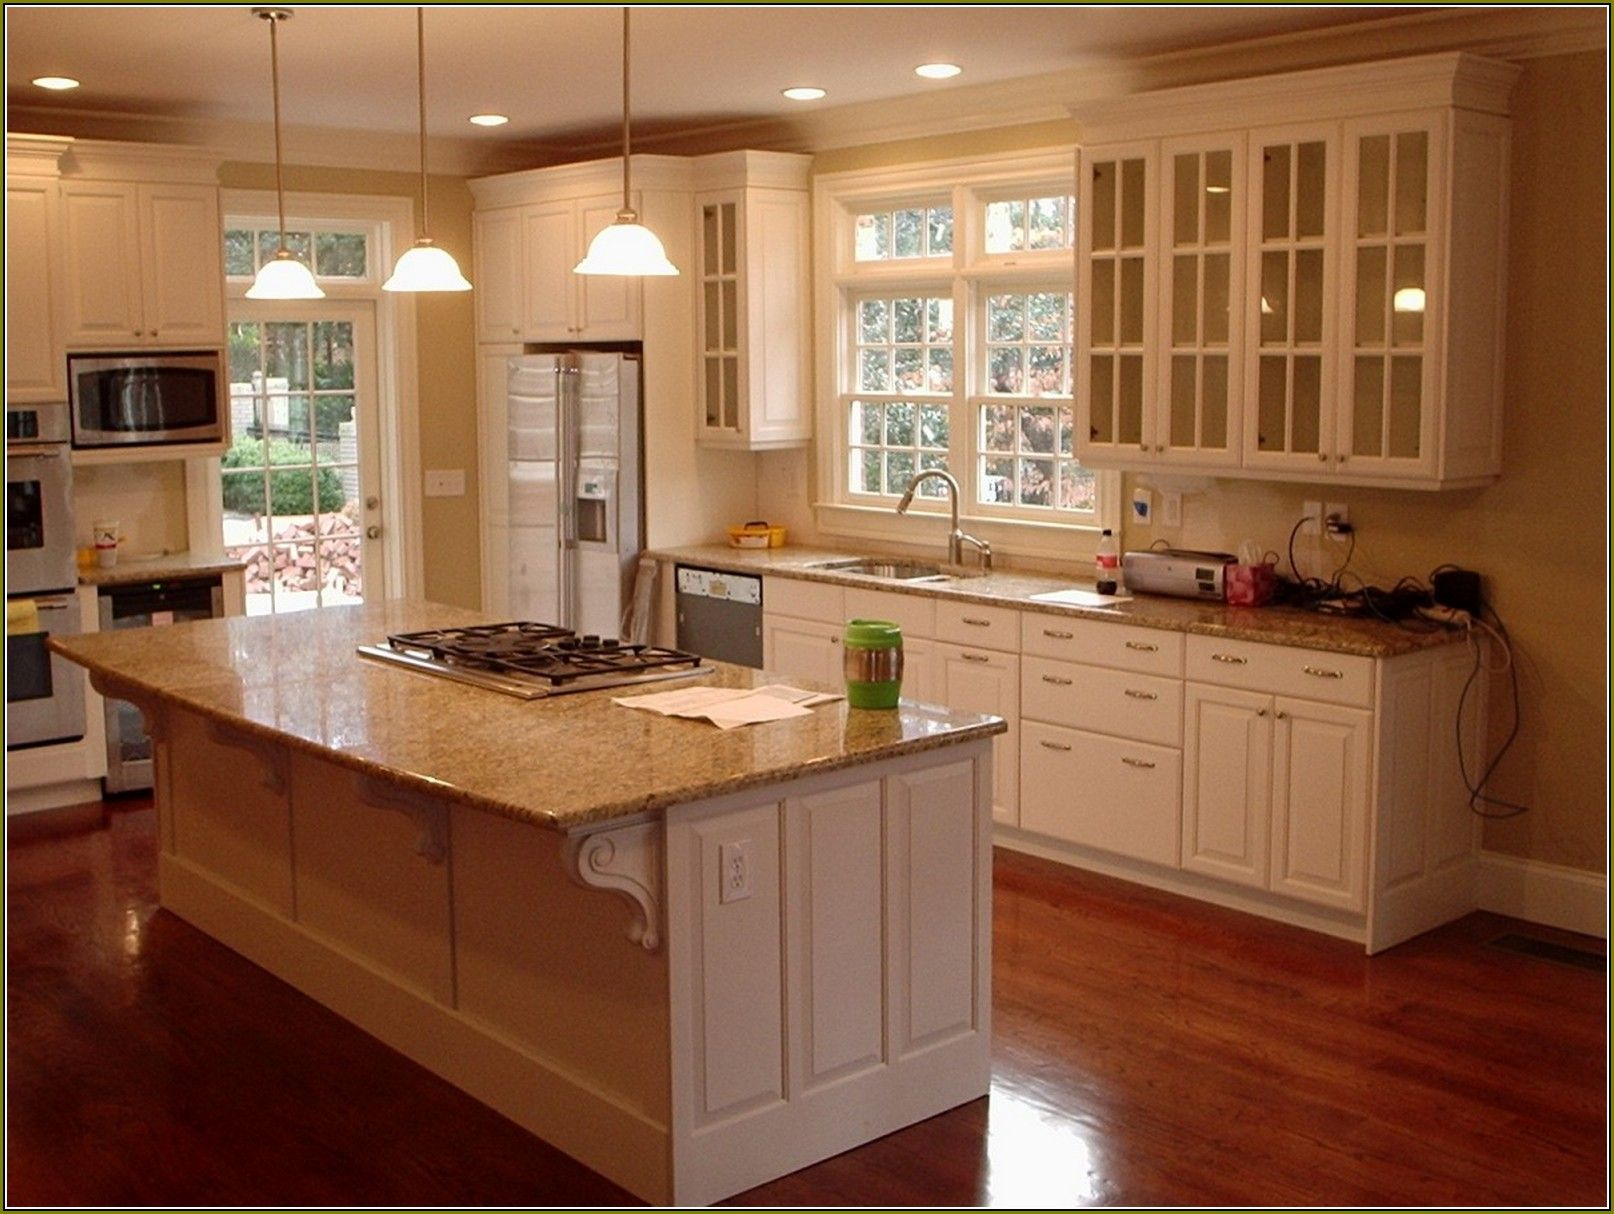 Attractive Unfinished Wood Cabinet Doors Home Depot #29 - Awesome Home Depot Kitchen Cabinets Kitchenstir From Unfinished Kitchen  Cabinets Canada